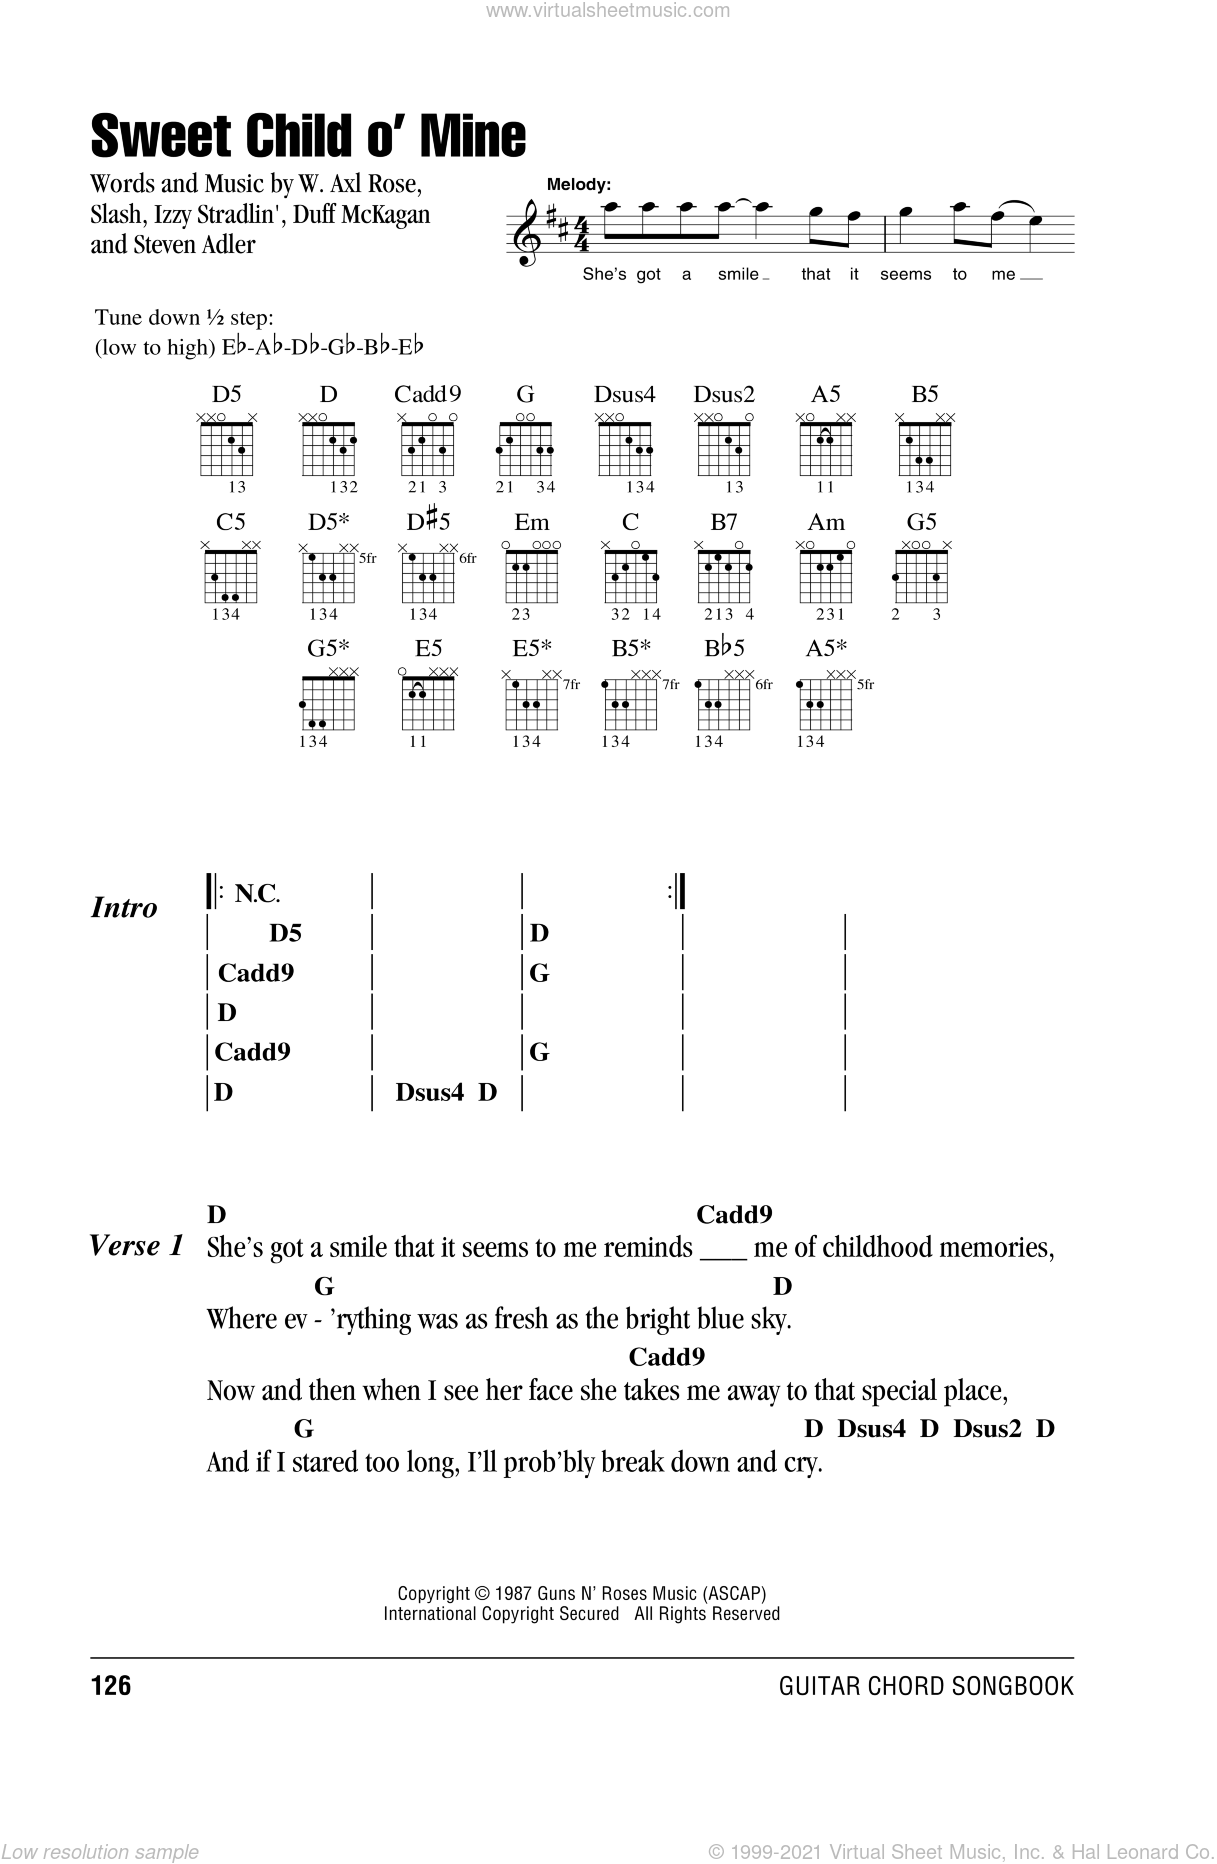 Sweet Child O' Mine sheet music for guitar (chords) by Axl Rose